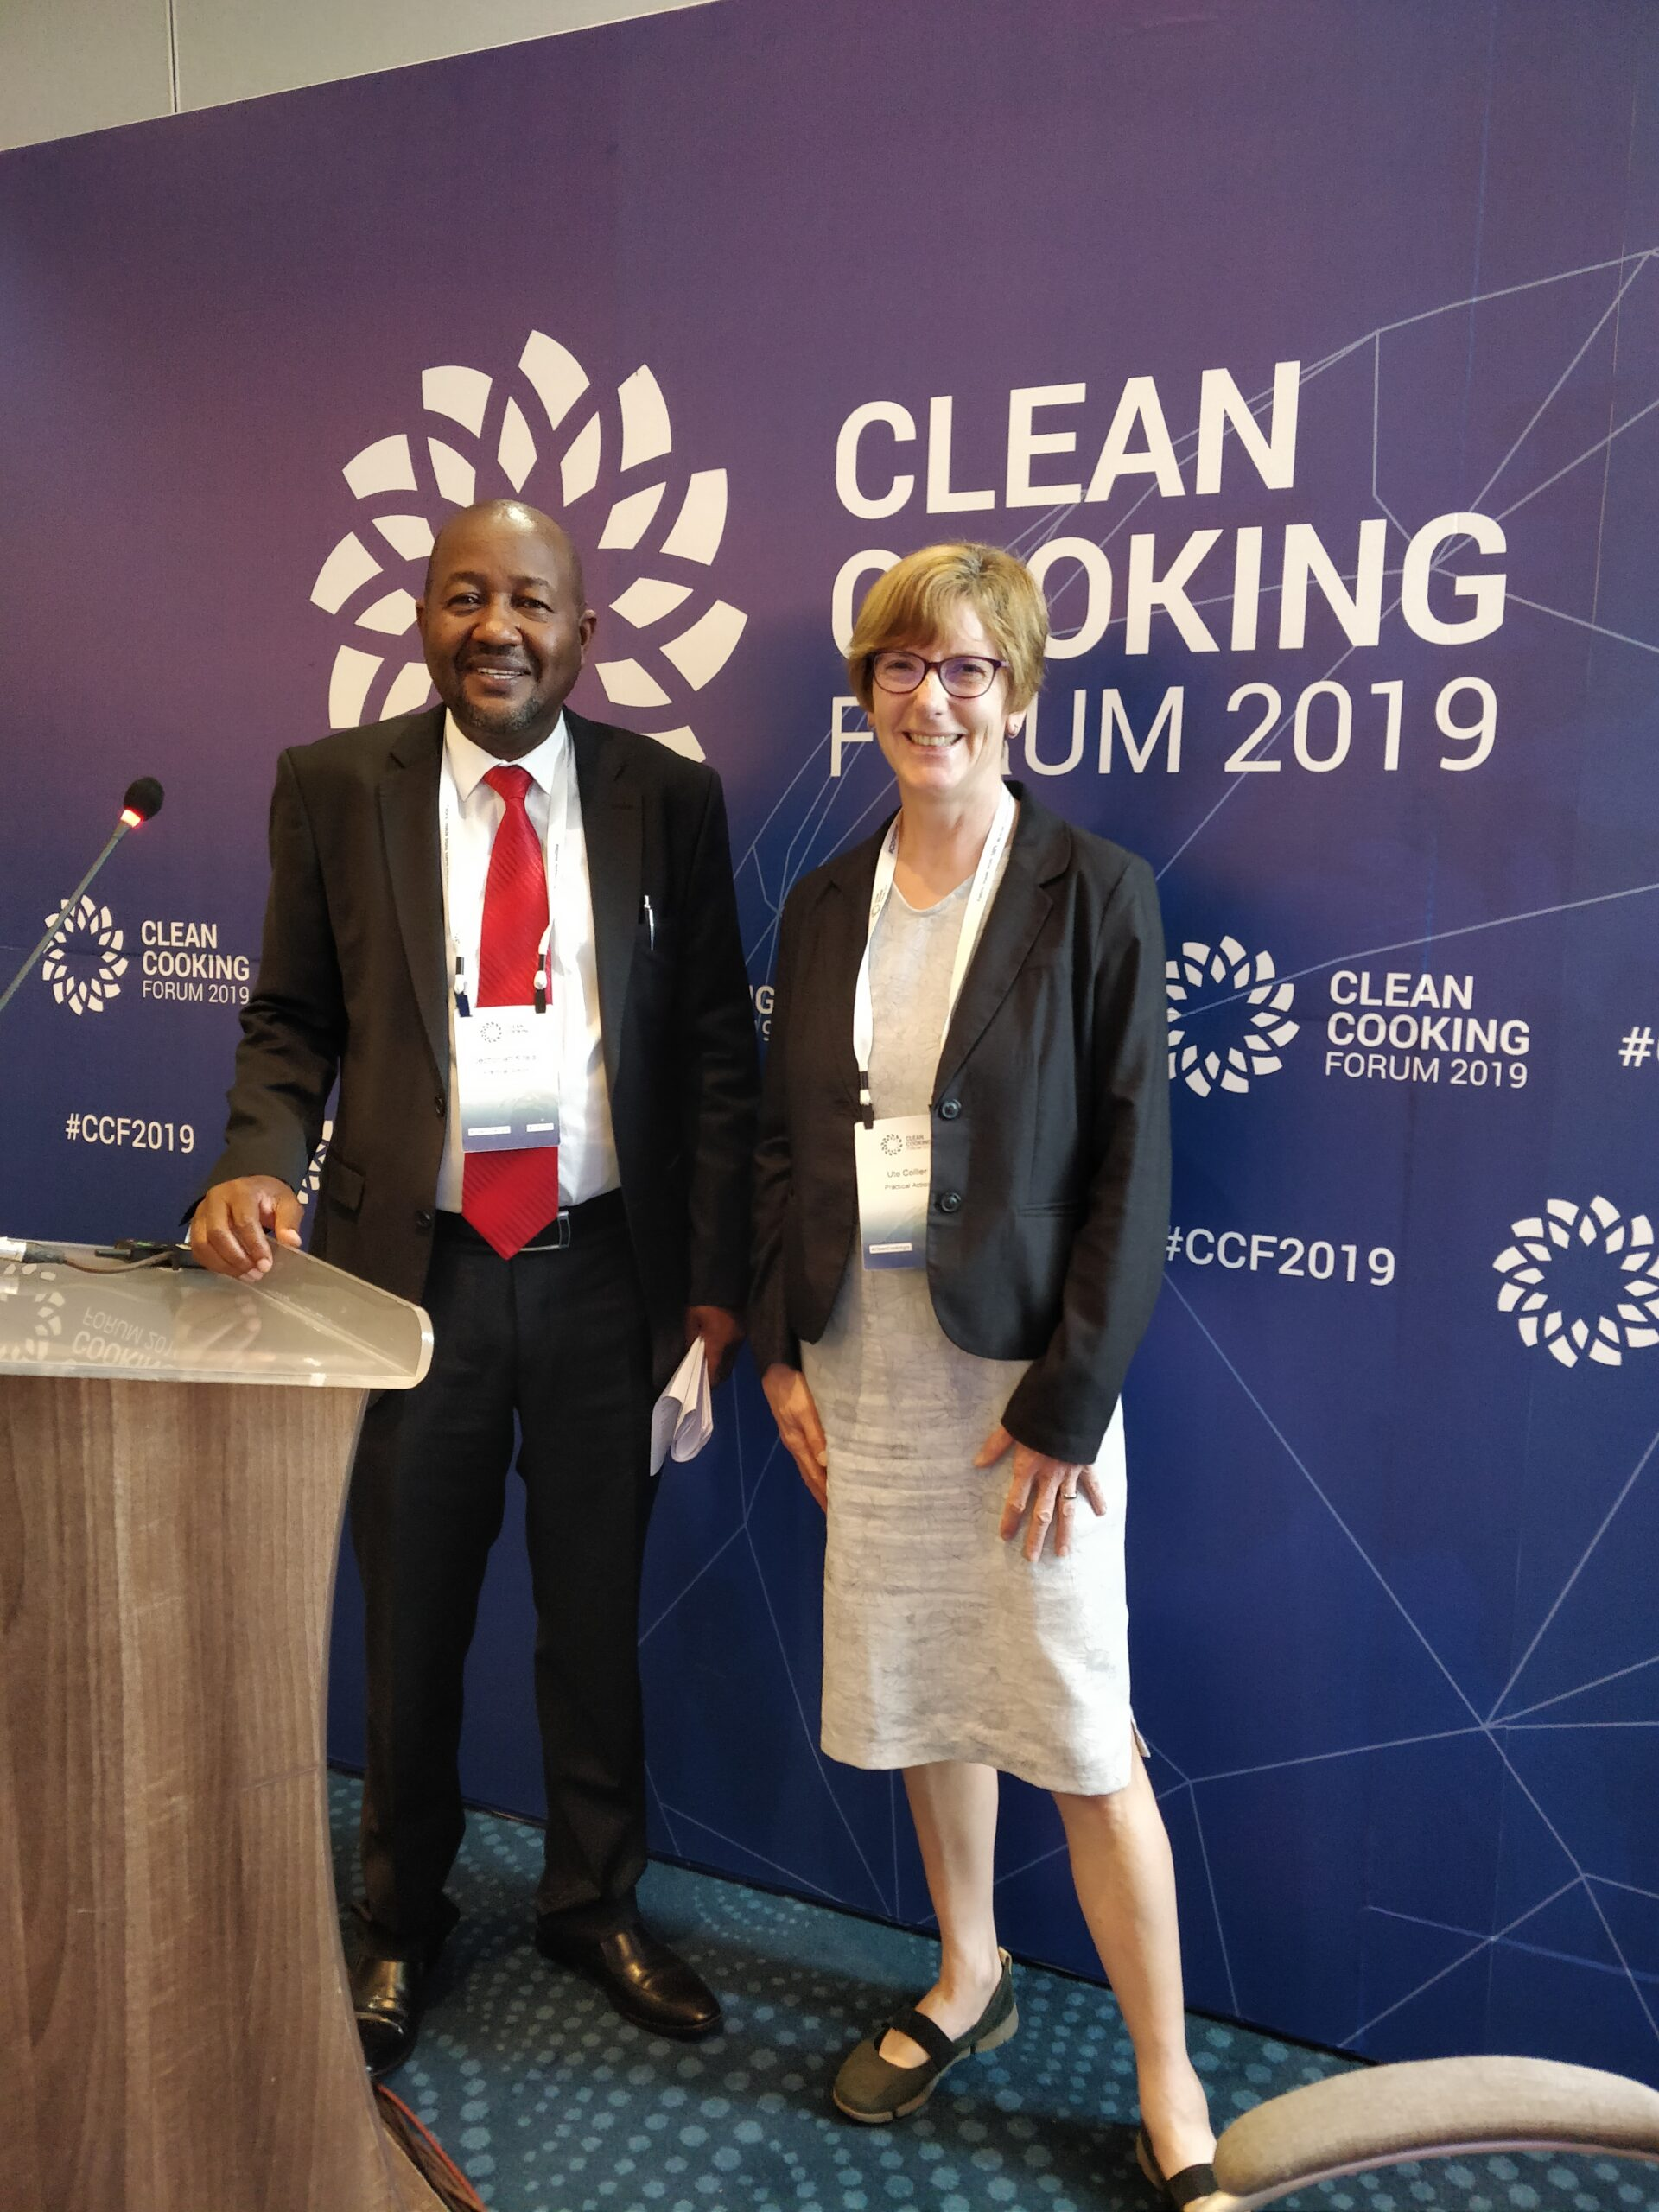 Ute Collier Clean Cooking Forum 2019